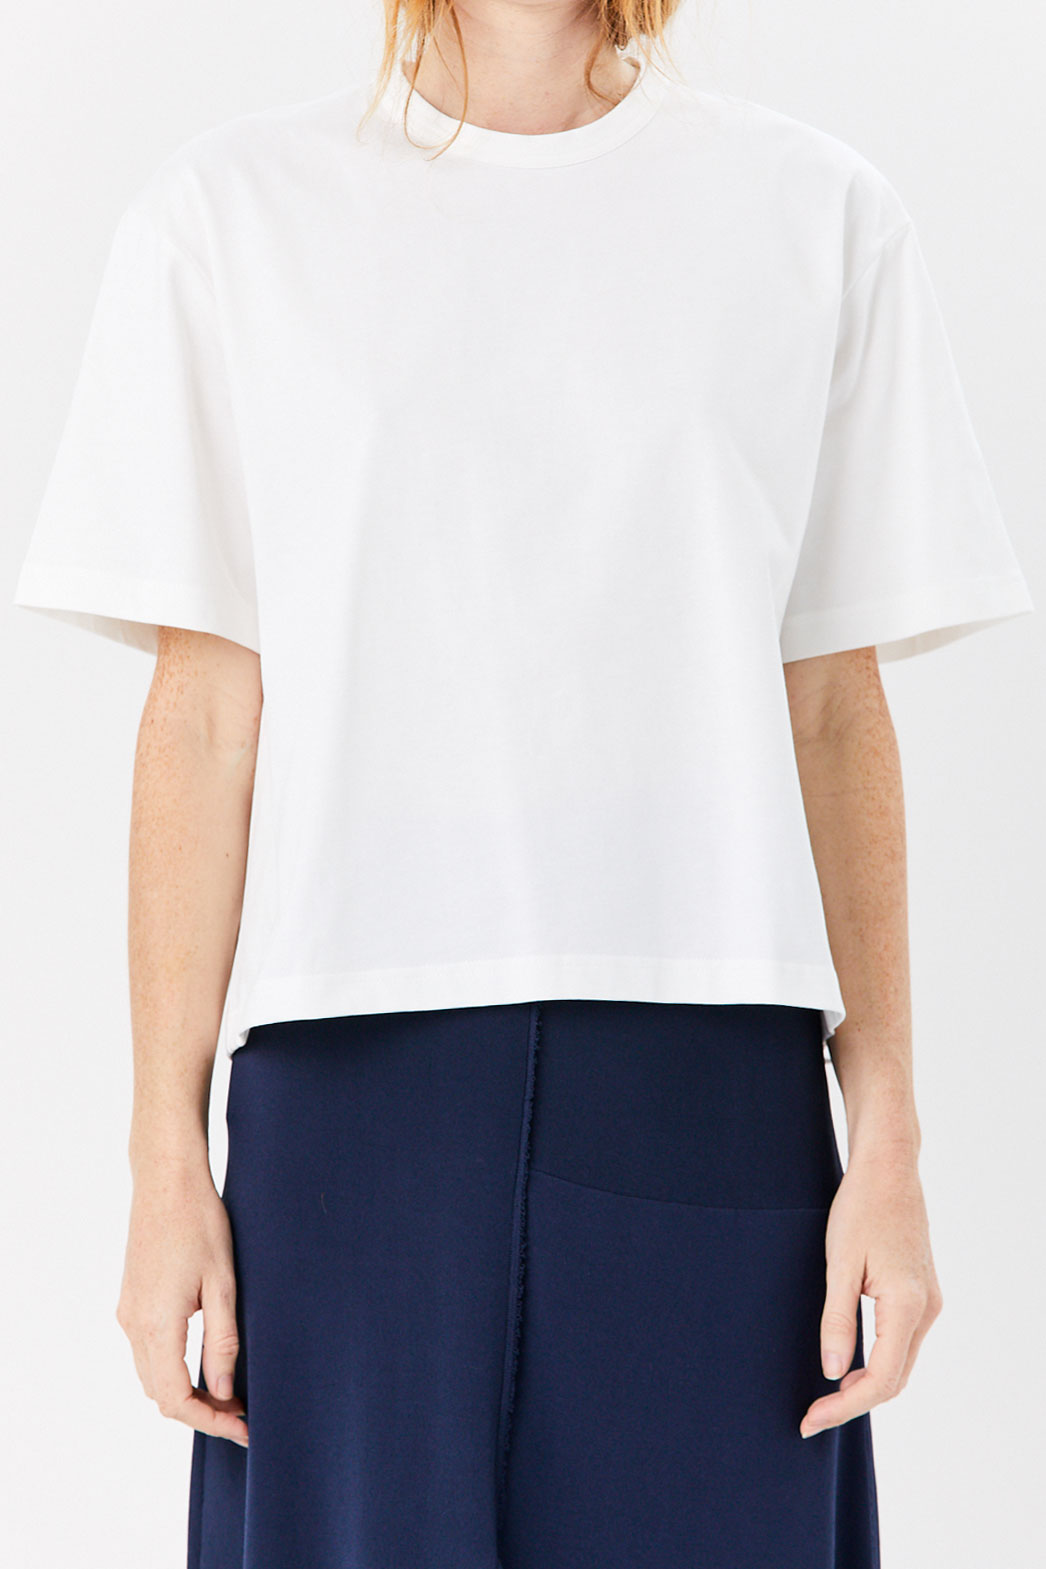 Studio Nicholson - Lee T-Shirt, White